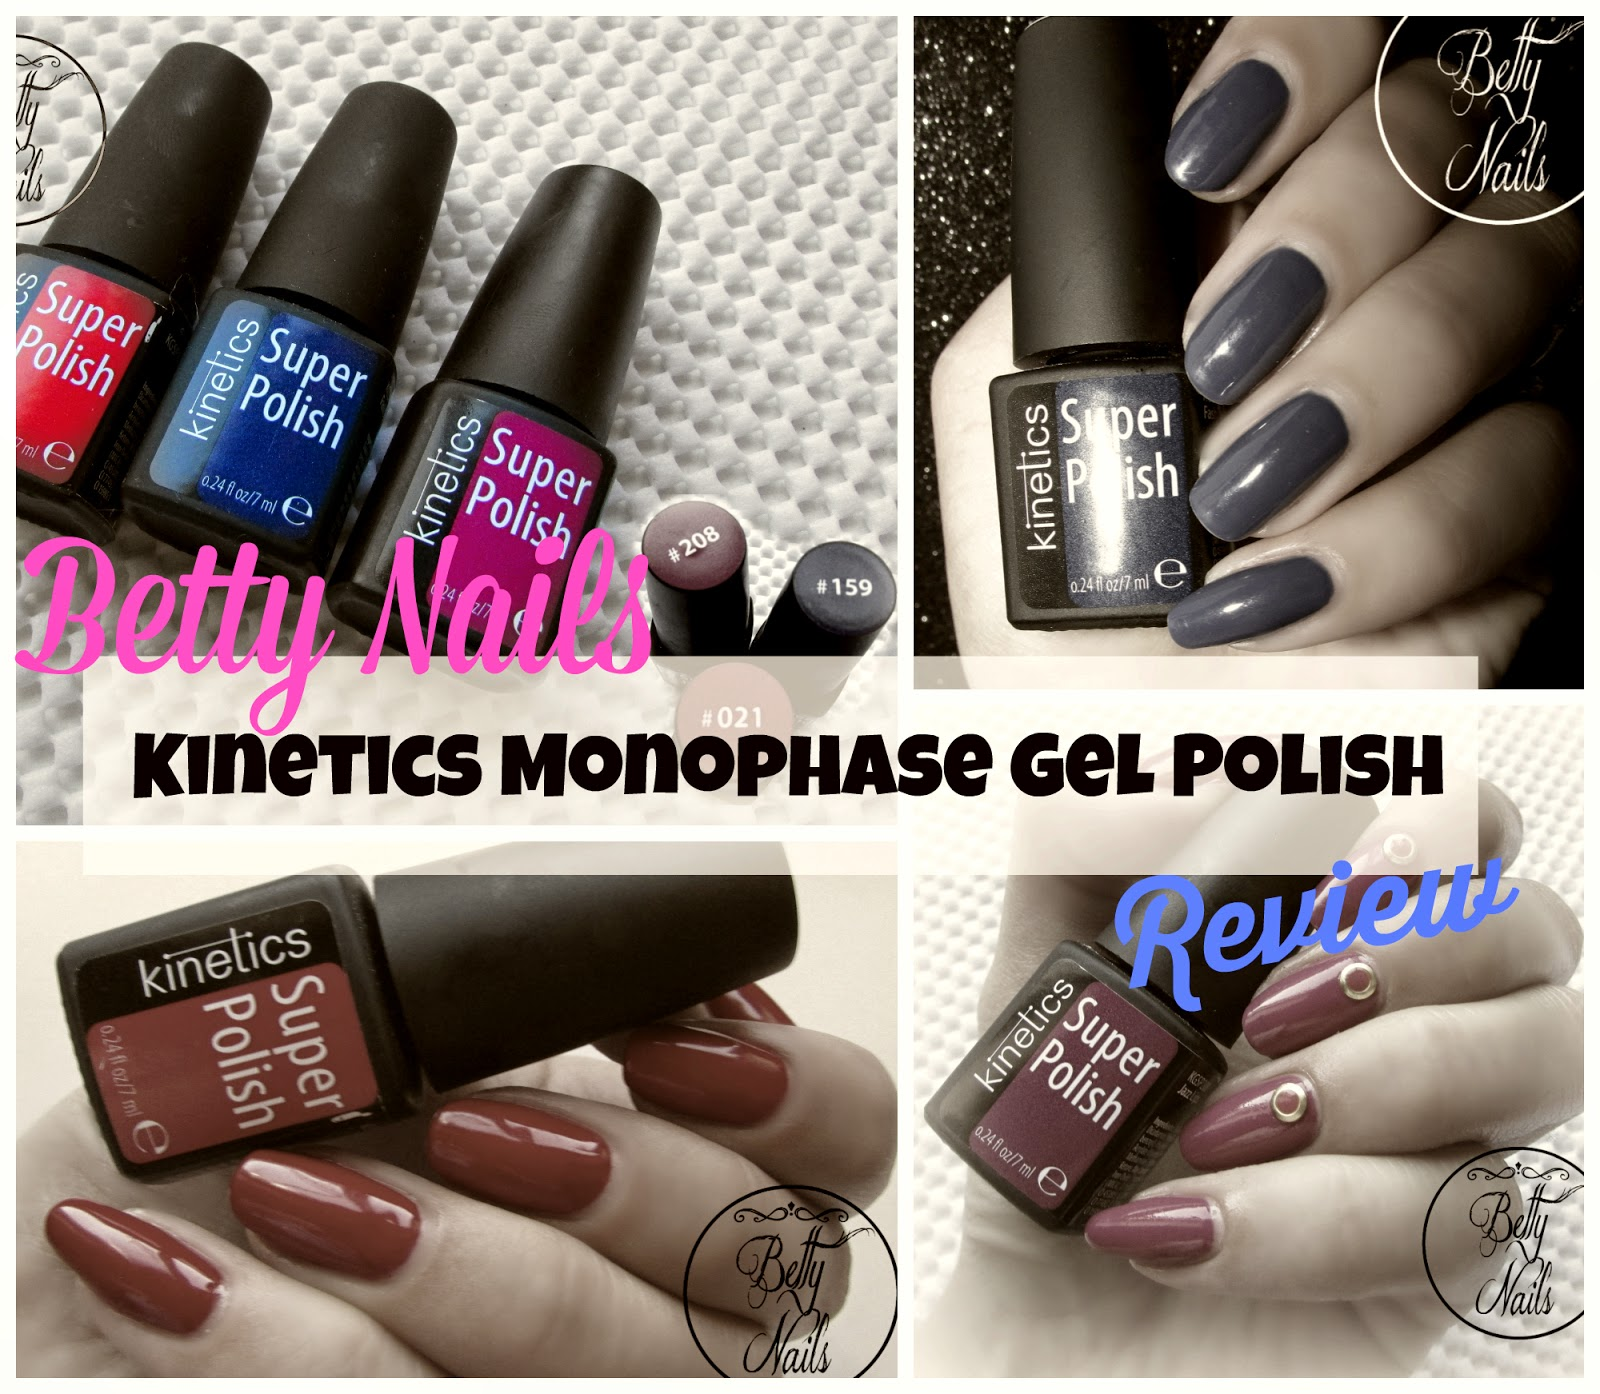 Betty Nails: Kinetics Super Polish - Monophase Line [Review]